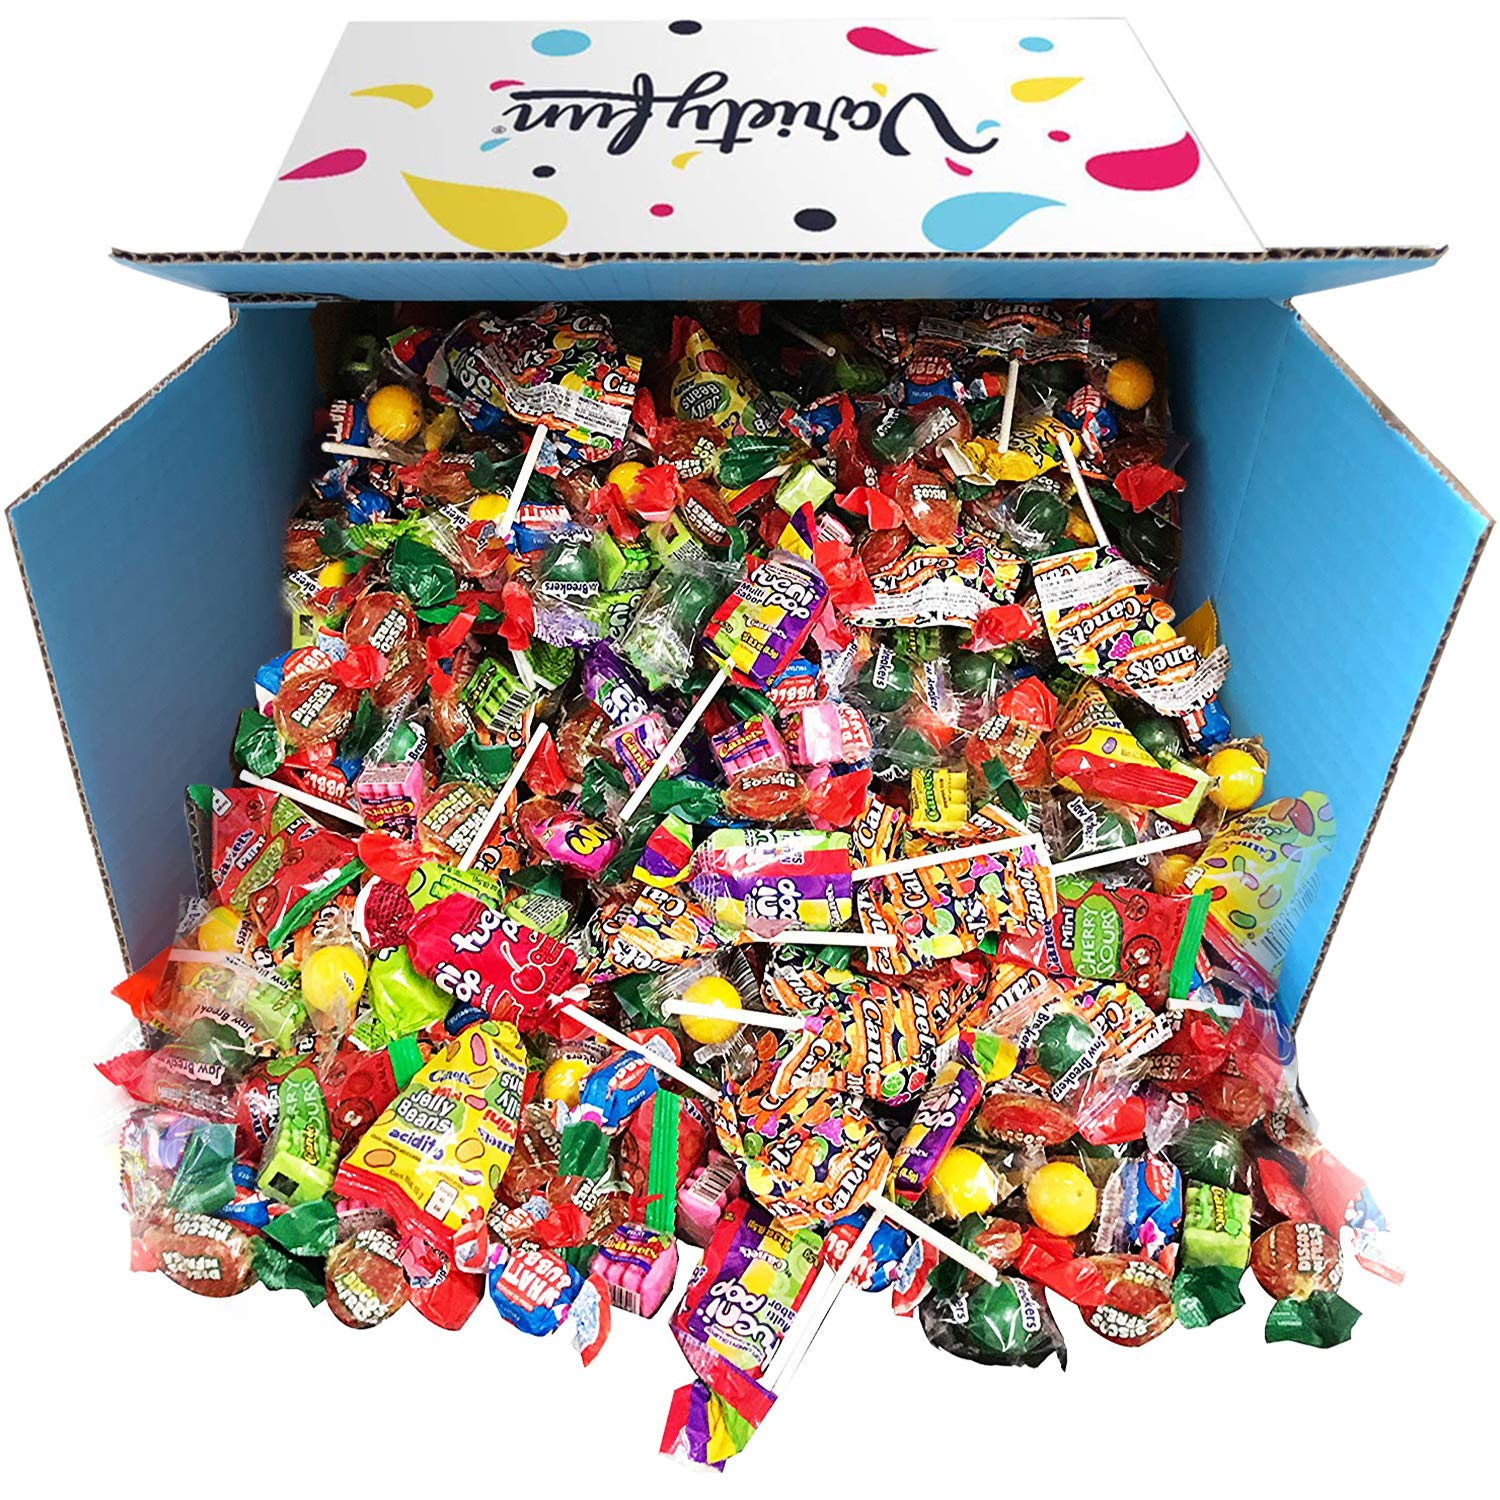 Candy Variety Assortment Bulk Value 10 Pounds by Variety Fun (160 oz) by Custom Varietea